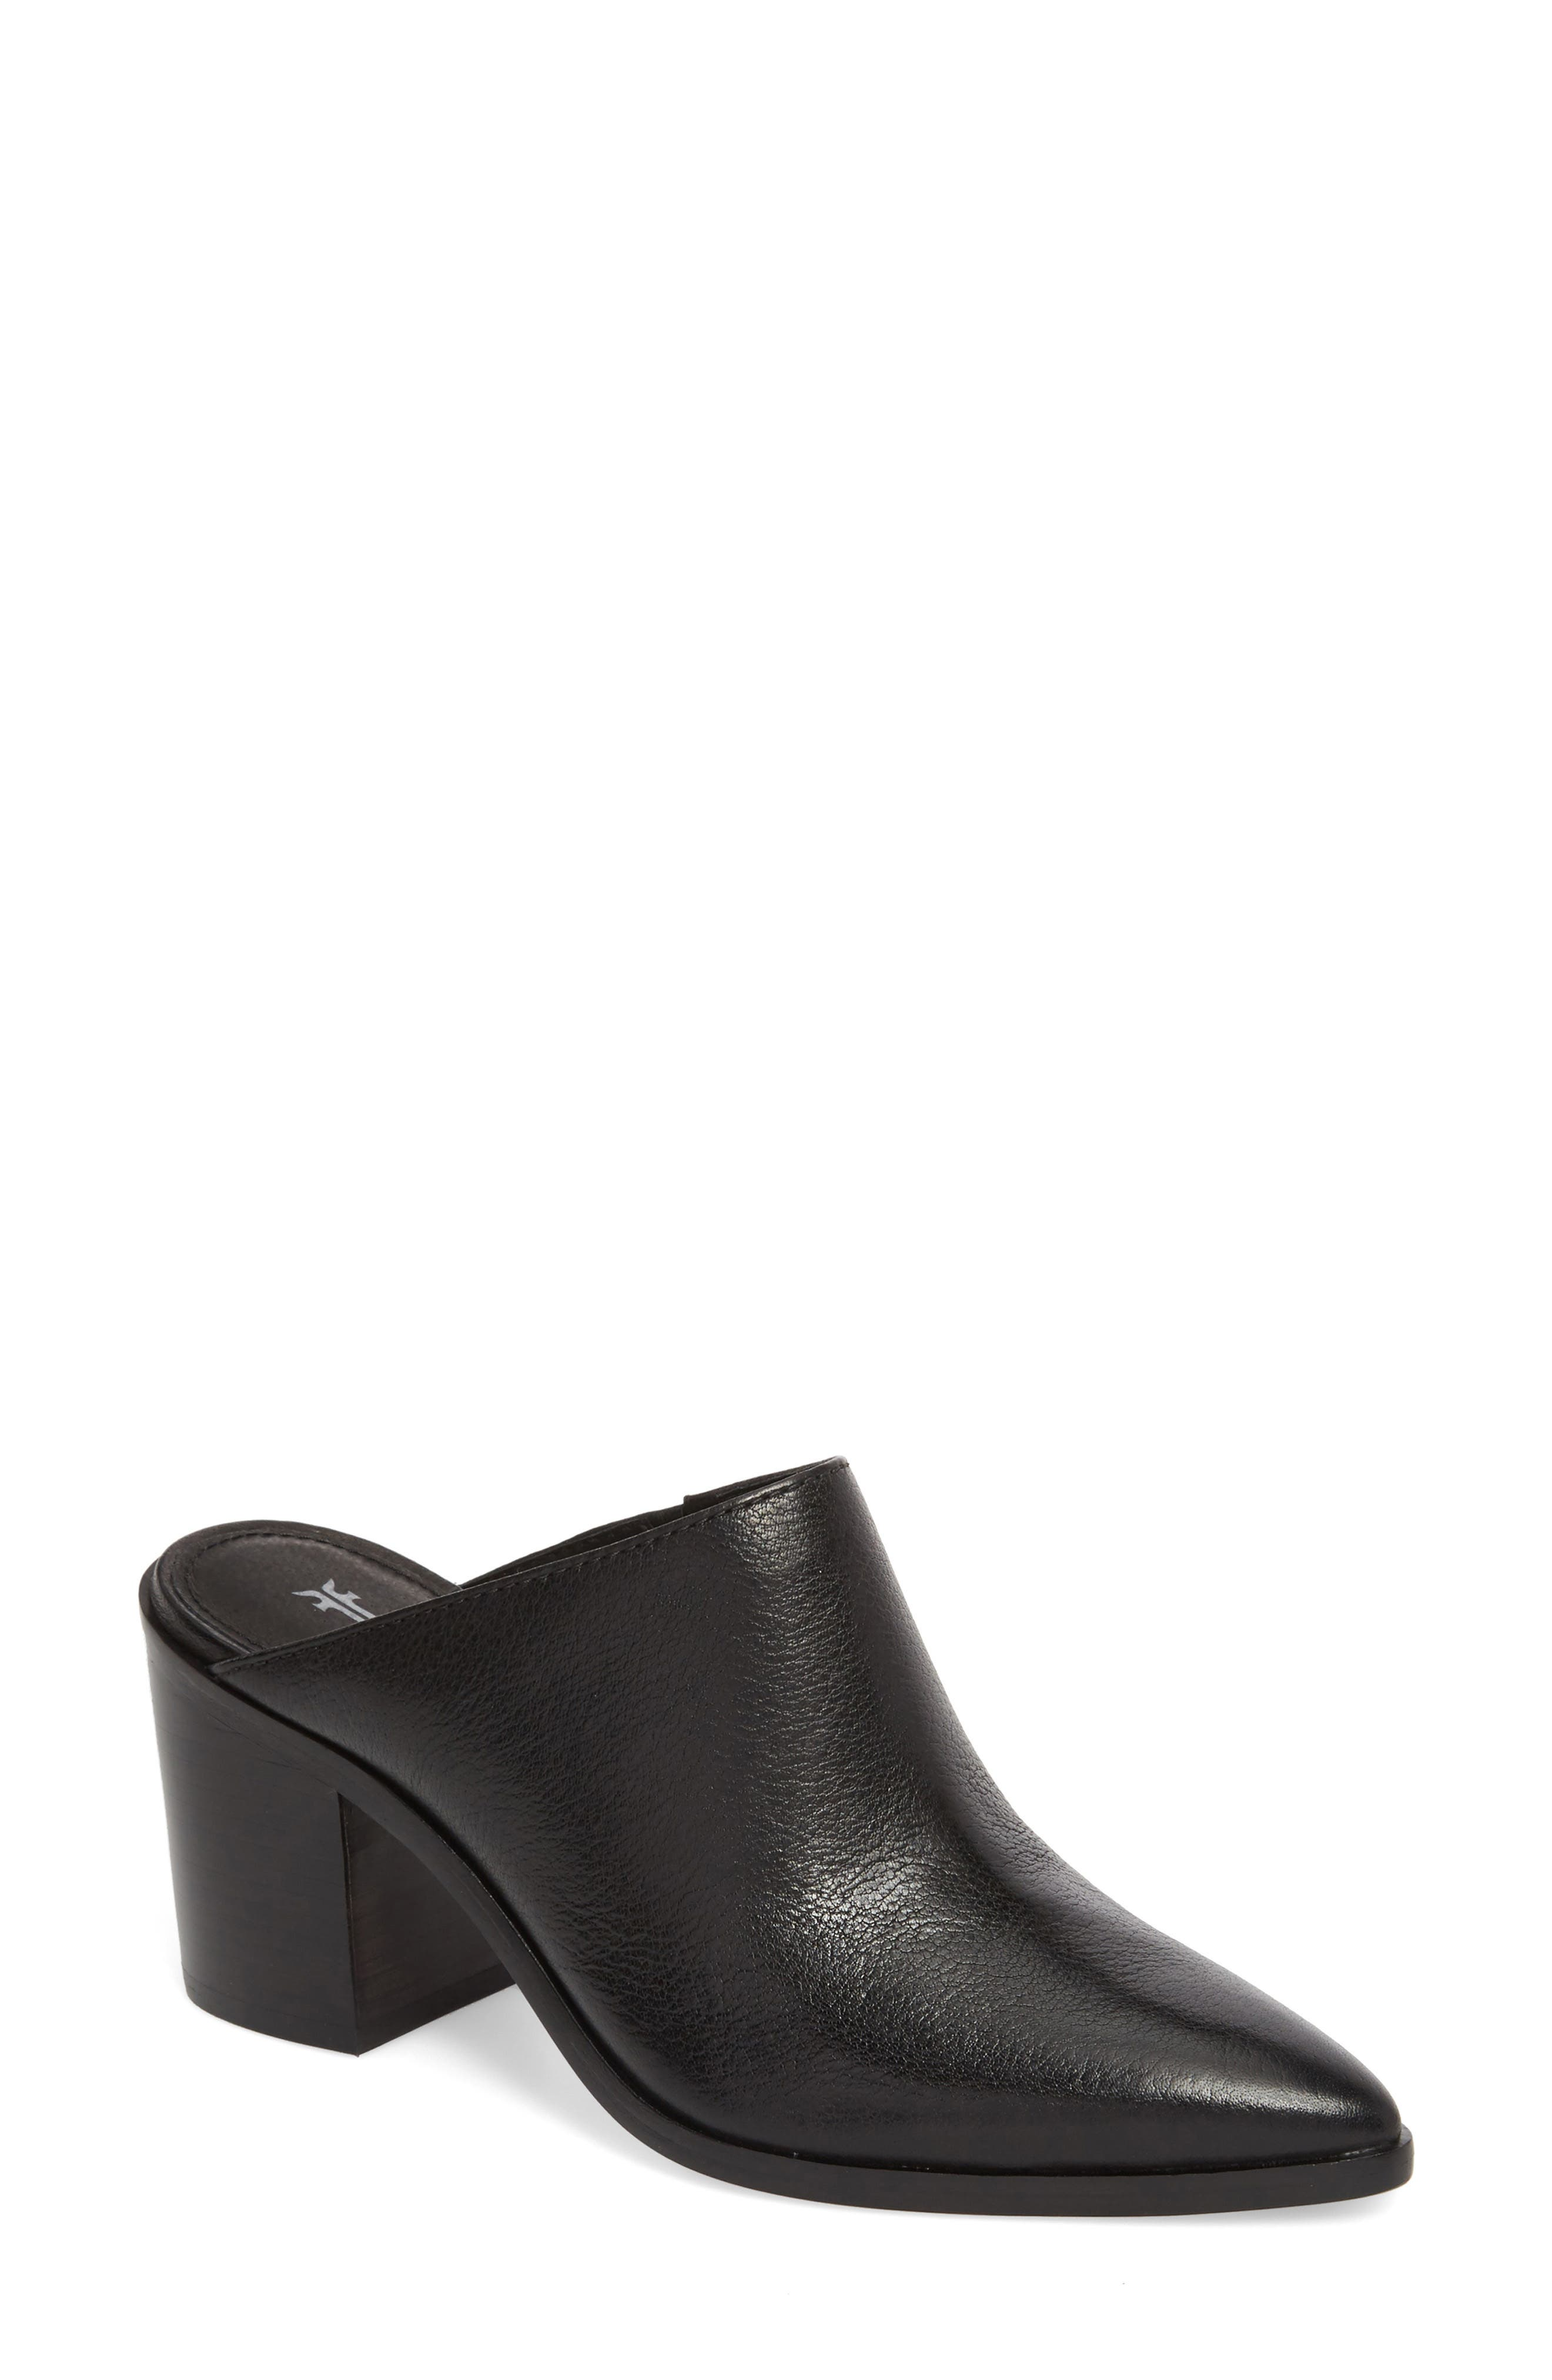 Flynn Mule,                             Main thumbnail 1, color,                             Black Leather